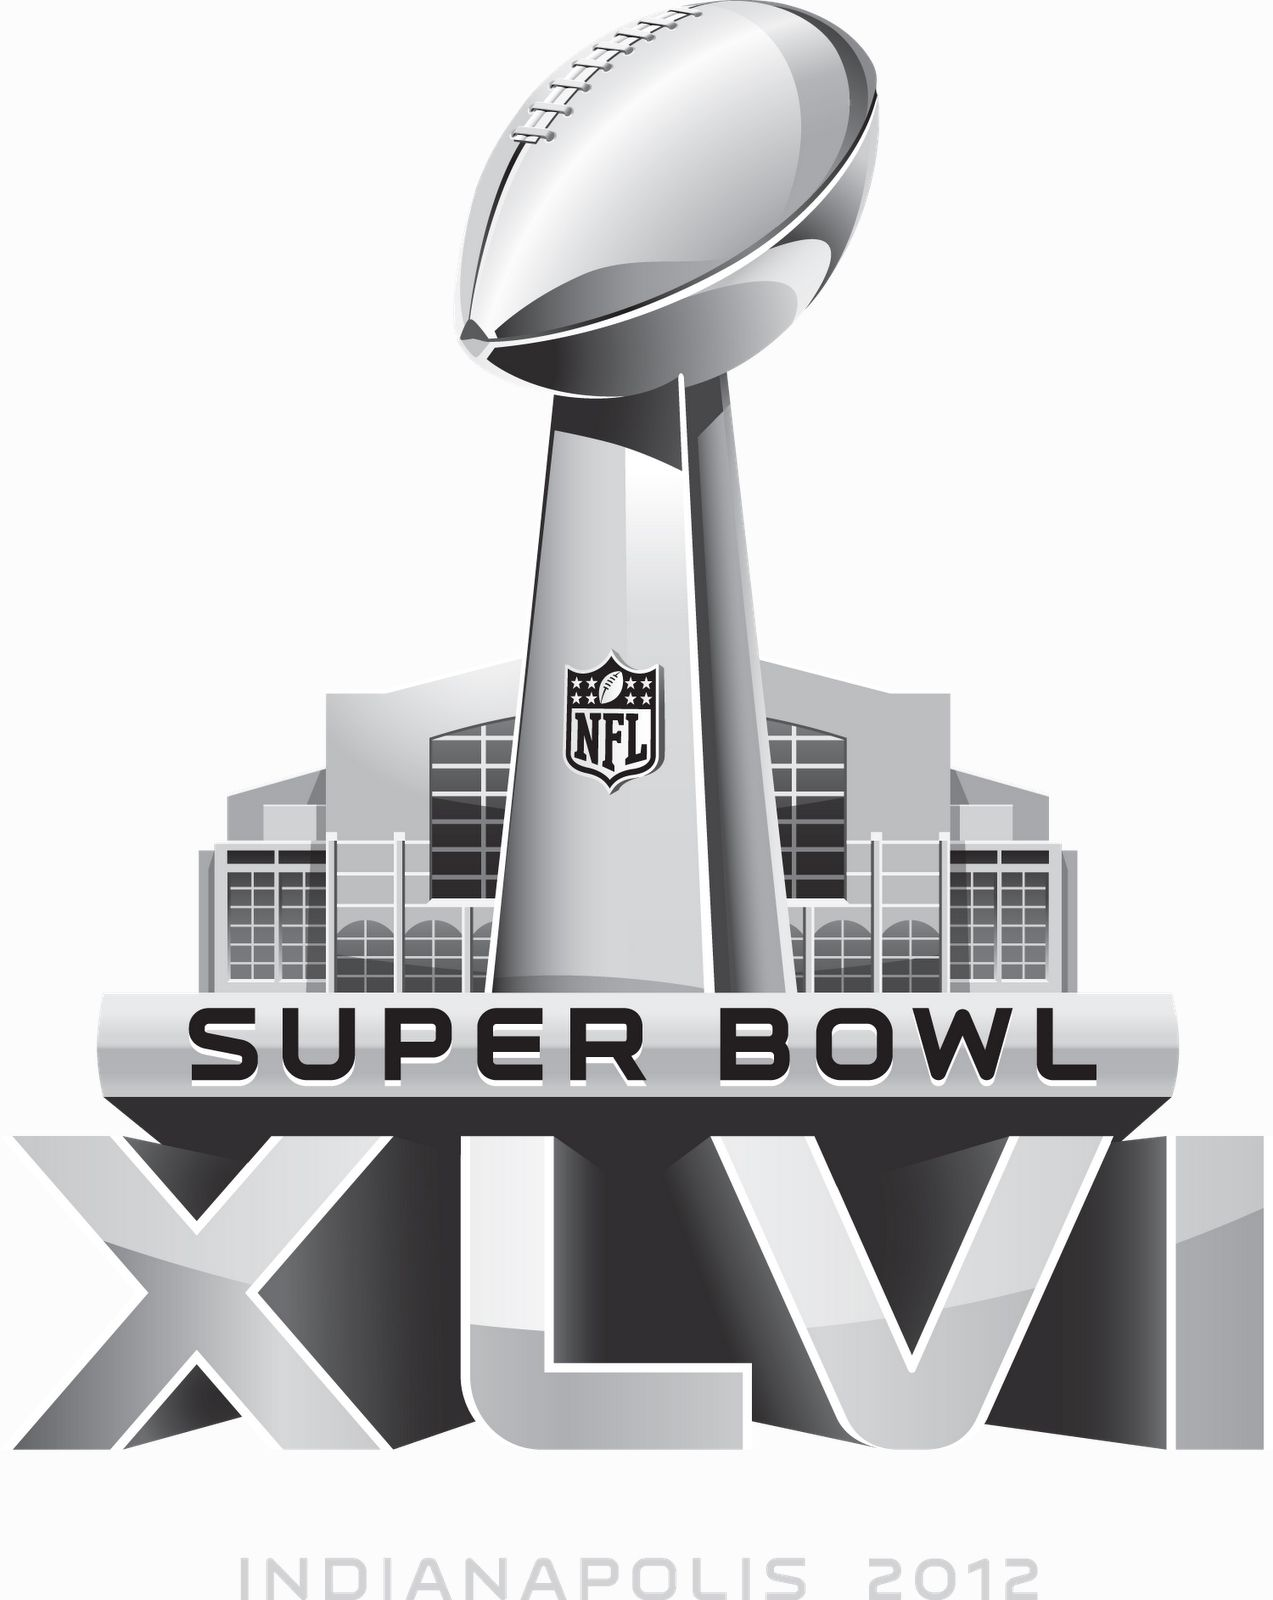 Super Bowl XLVI here we come! (Click for official info on Indy) #superbowl #Patriots